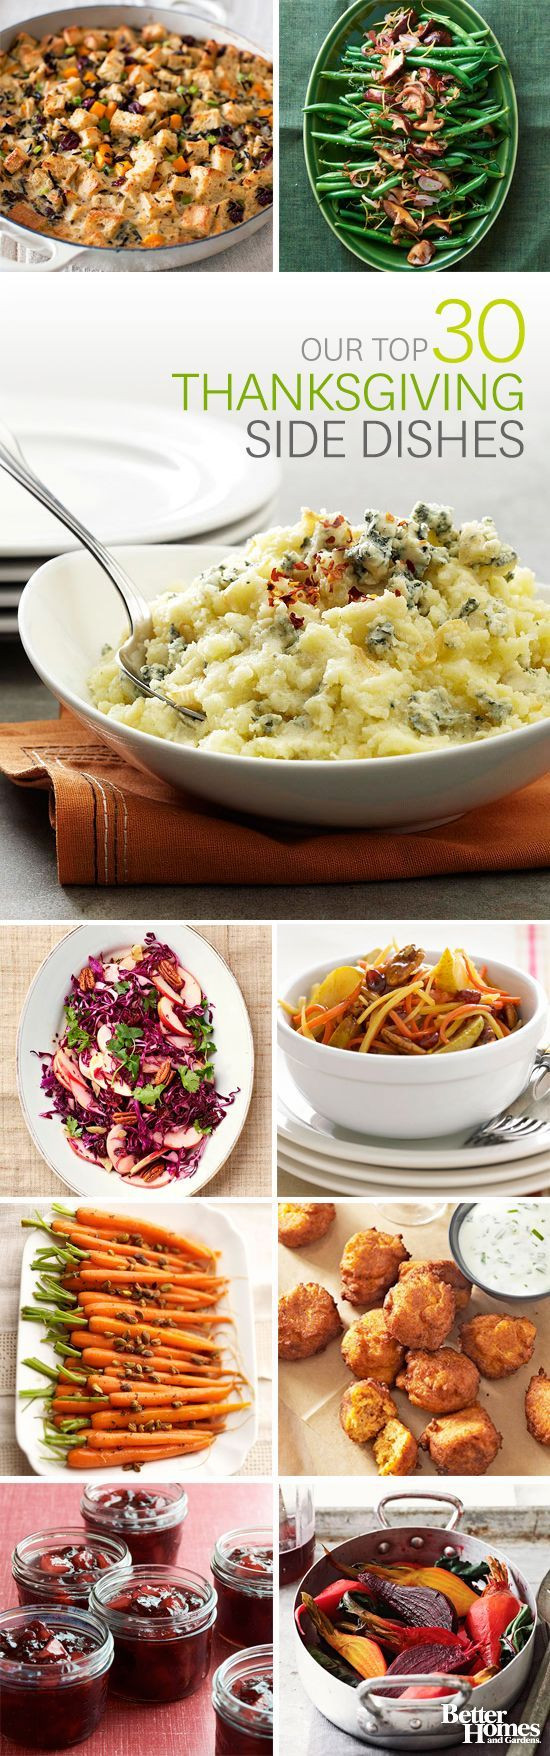 Make Ahead Side Dishes For Thanksgiving  Make Ahead Holiday Side Dishes